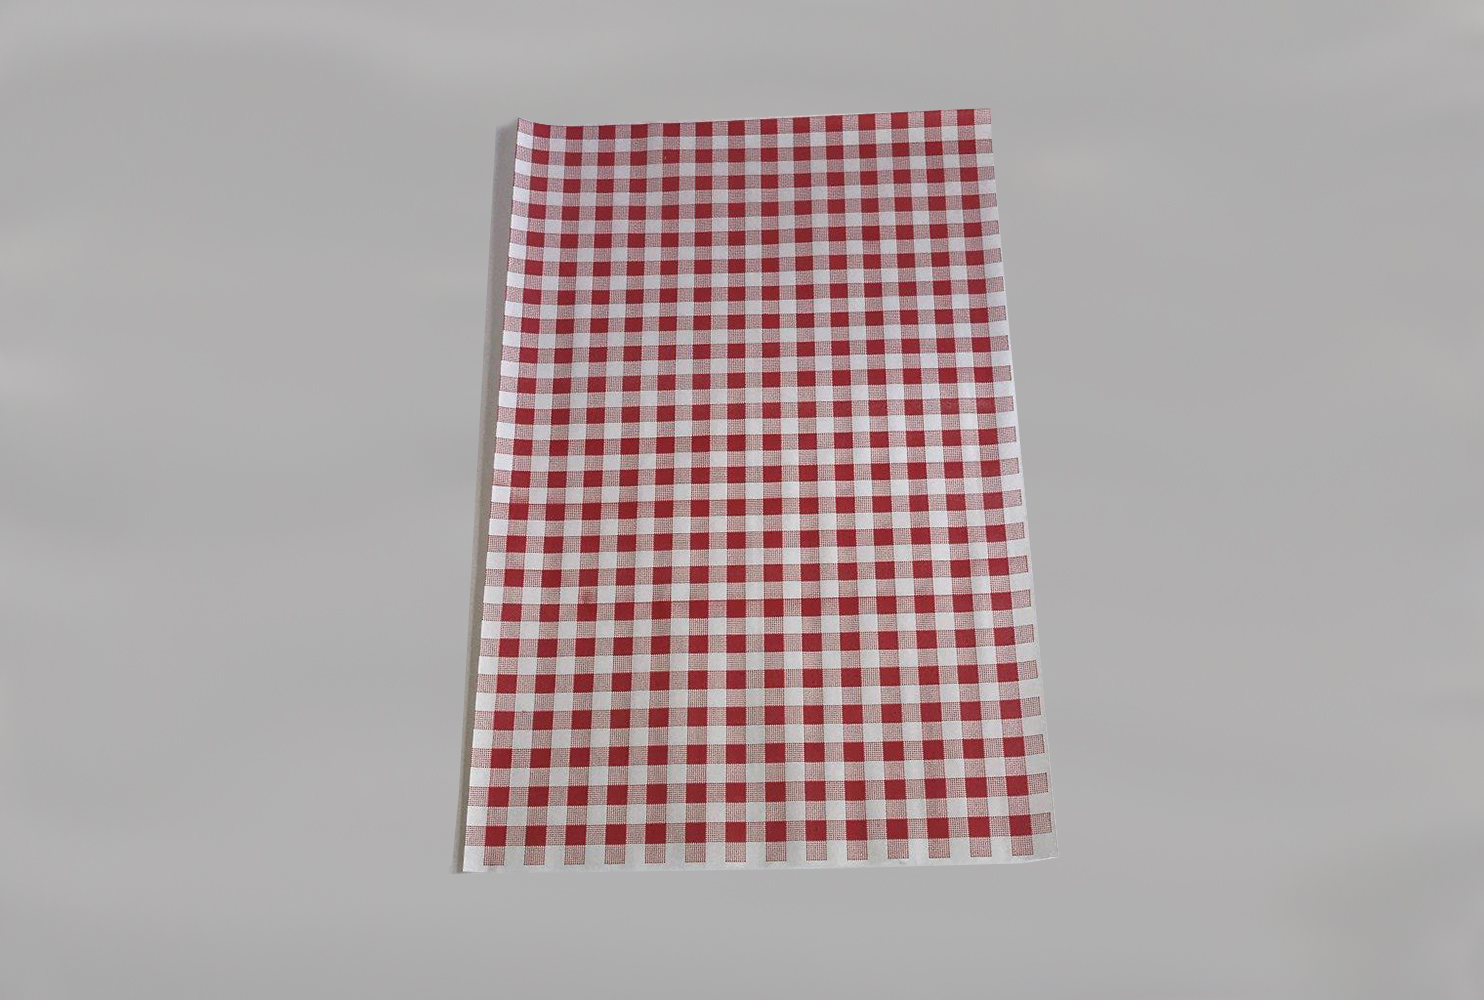 RED GINGHAM SHEETS 250X380 50GSM